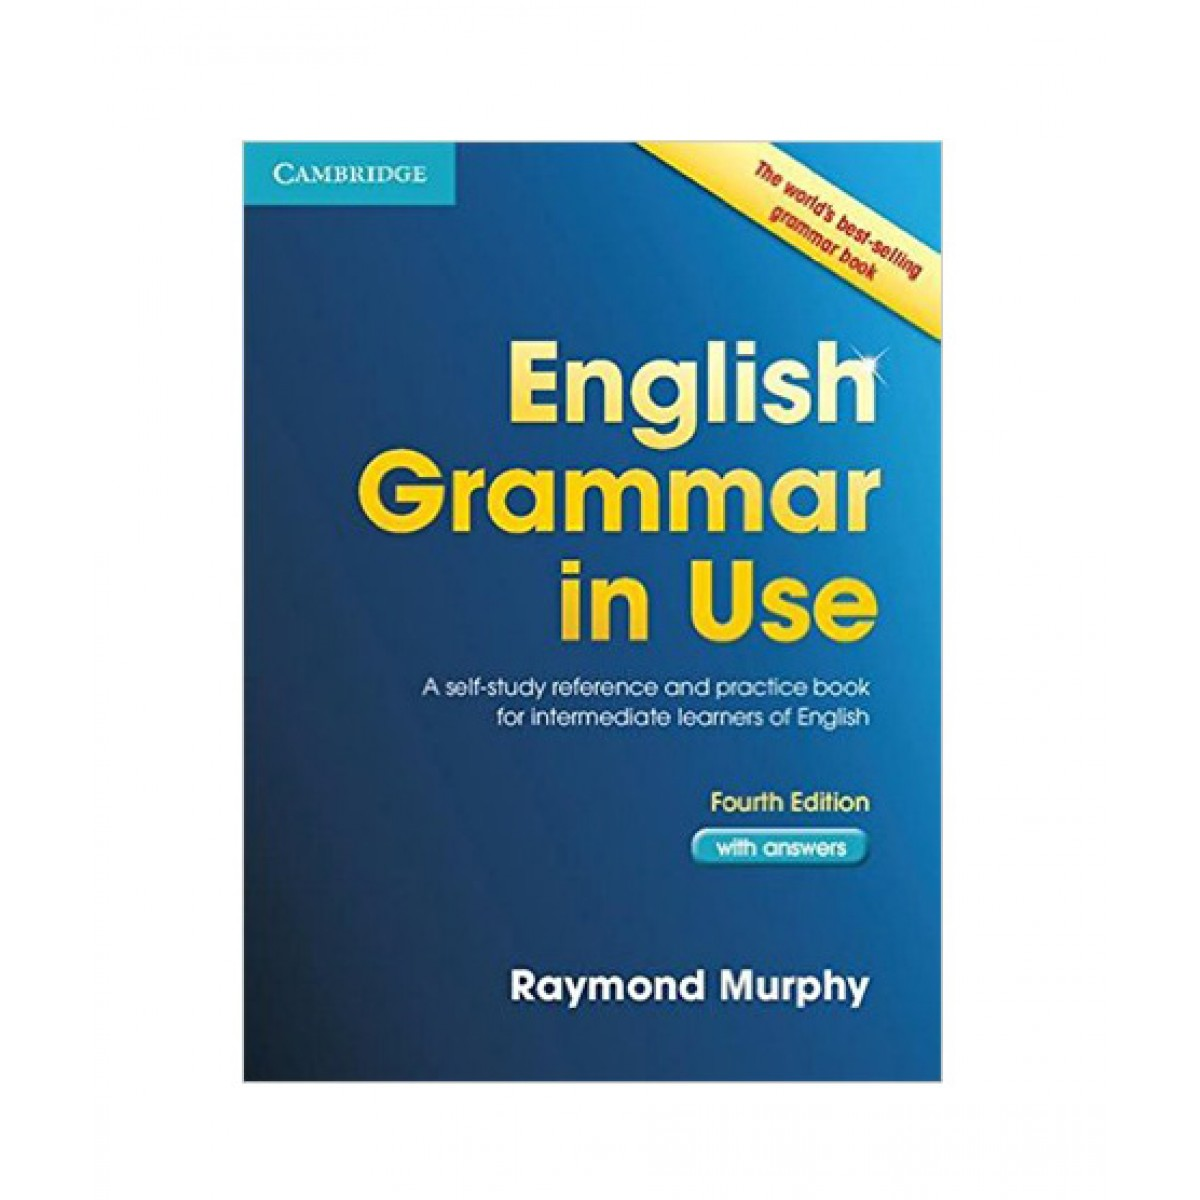 English Grammar In Use Book 4th Edition Available In